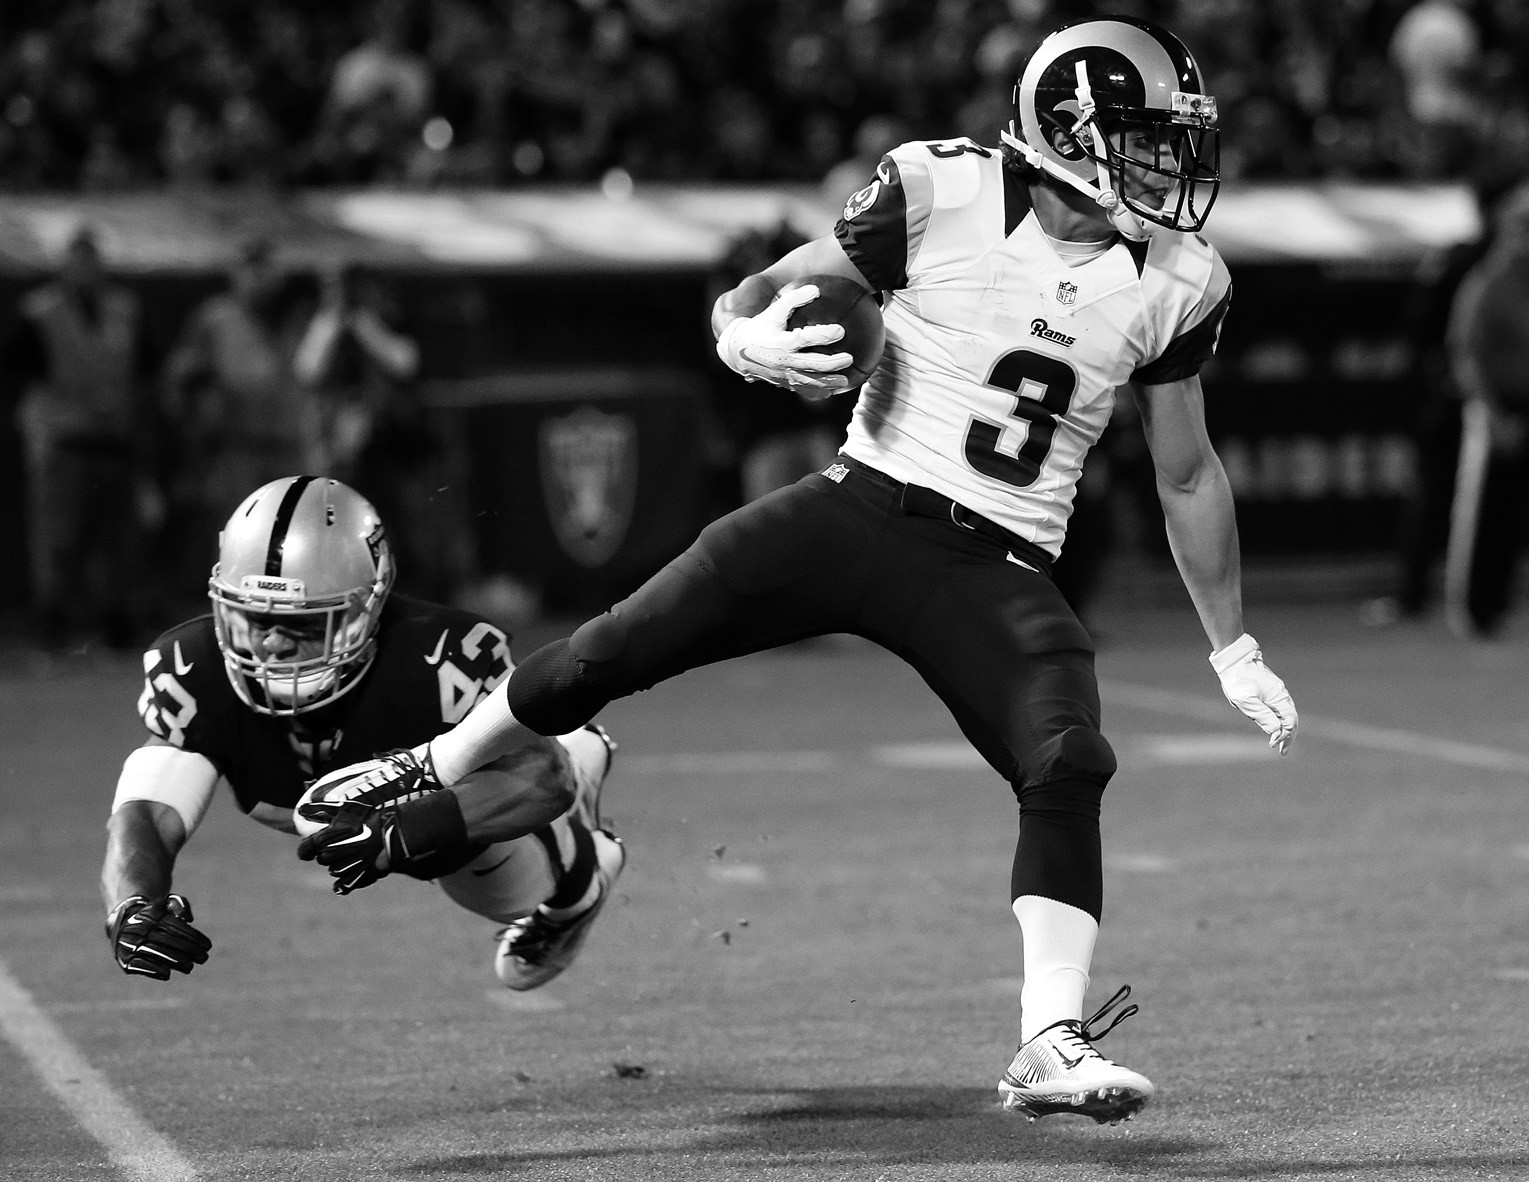 In this Aug. 14, file photo, St. Louis Rams wide receiver Daniel Rodriguez (3) runs past Oakland Raiders linebacker Jimmy Hall (43) during the second half of an NFL preseason football game in Oakland, Calif. Long after the rest of the St. Louis Rams have left the practice field, Daniel Rodriguez drips with sweat running dozens of extra pass routes from backup quarterback Austin Davis. No one can tell the fearless 27-year-old rookie with the unique back story, a decorated Army veteran, that he's nothing more than a training camp feel-good story.